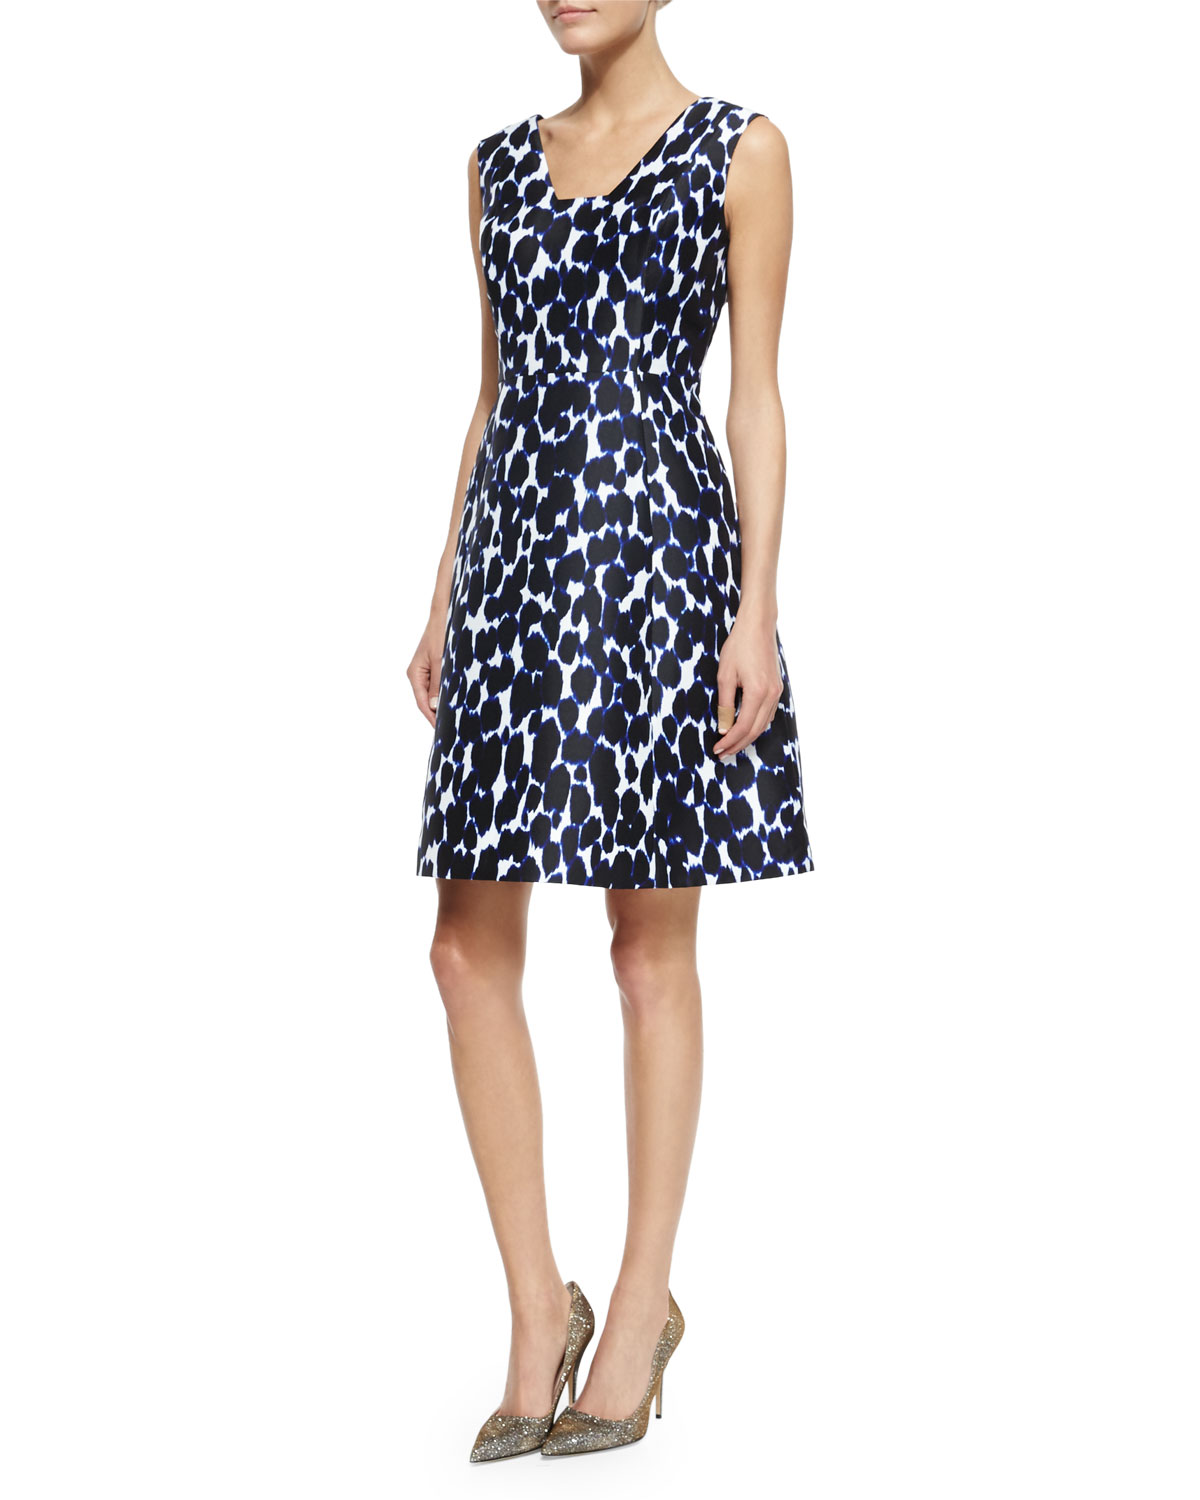 4da6cd86d033 kate spade new york sleeveless animal-print fit & flare dress ...